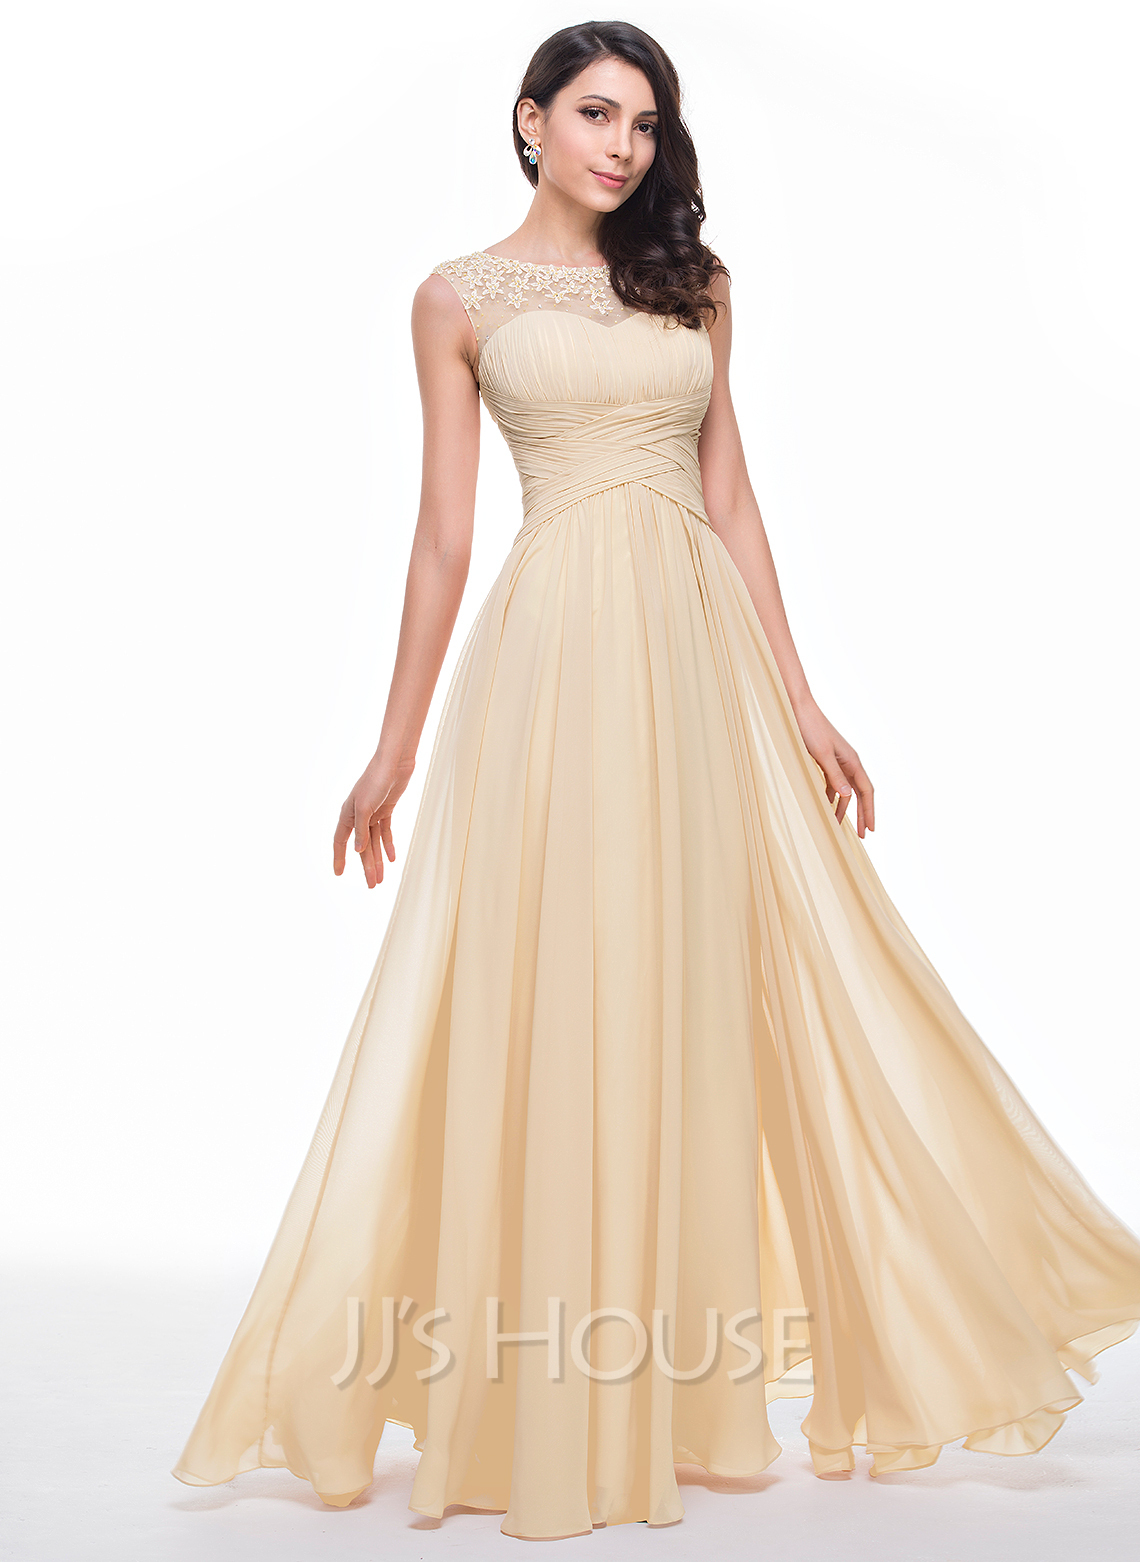 Prom dresses prom dresses jjshouse chiffon tulle prom dress with ruffle beading flowers 018056791 ombrellifo Images